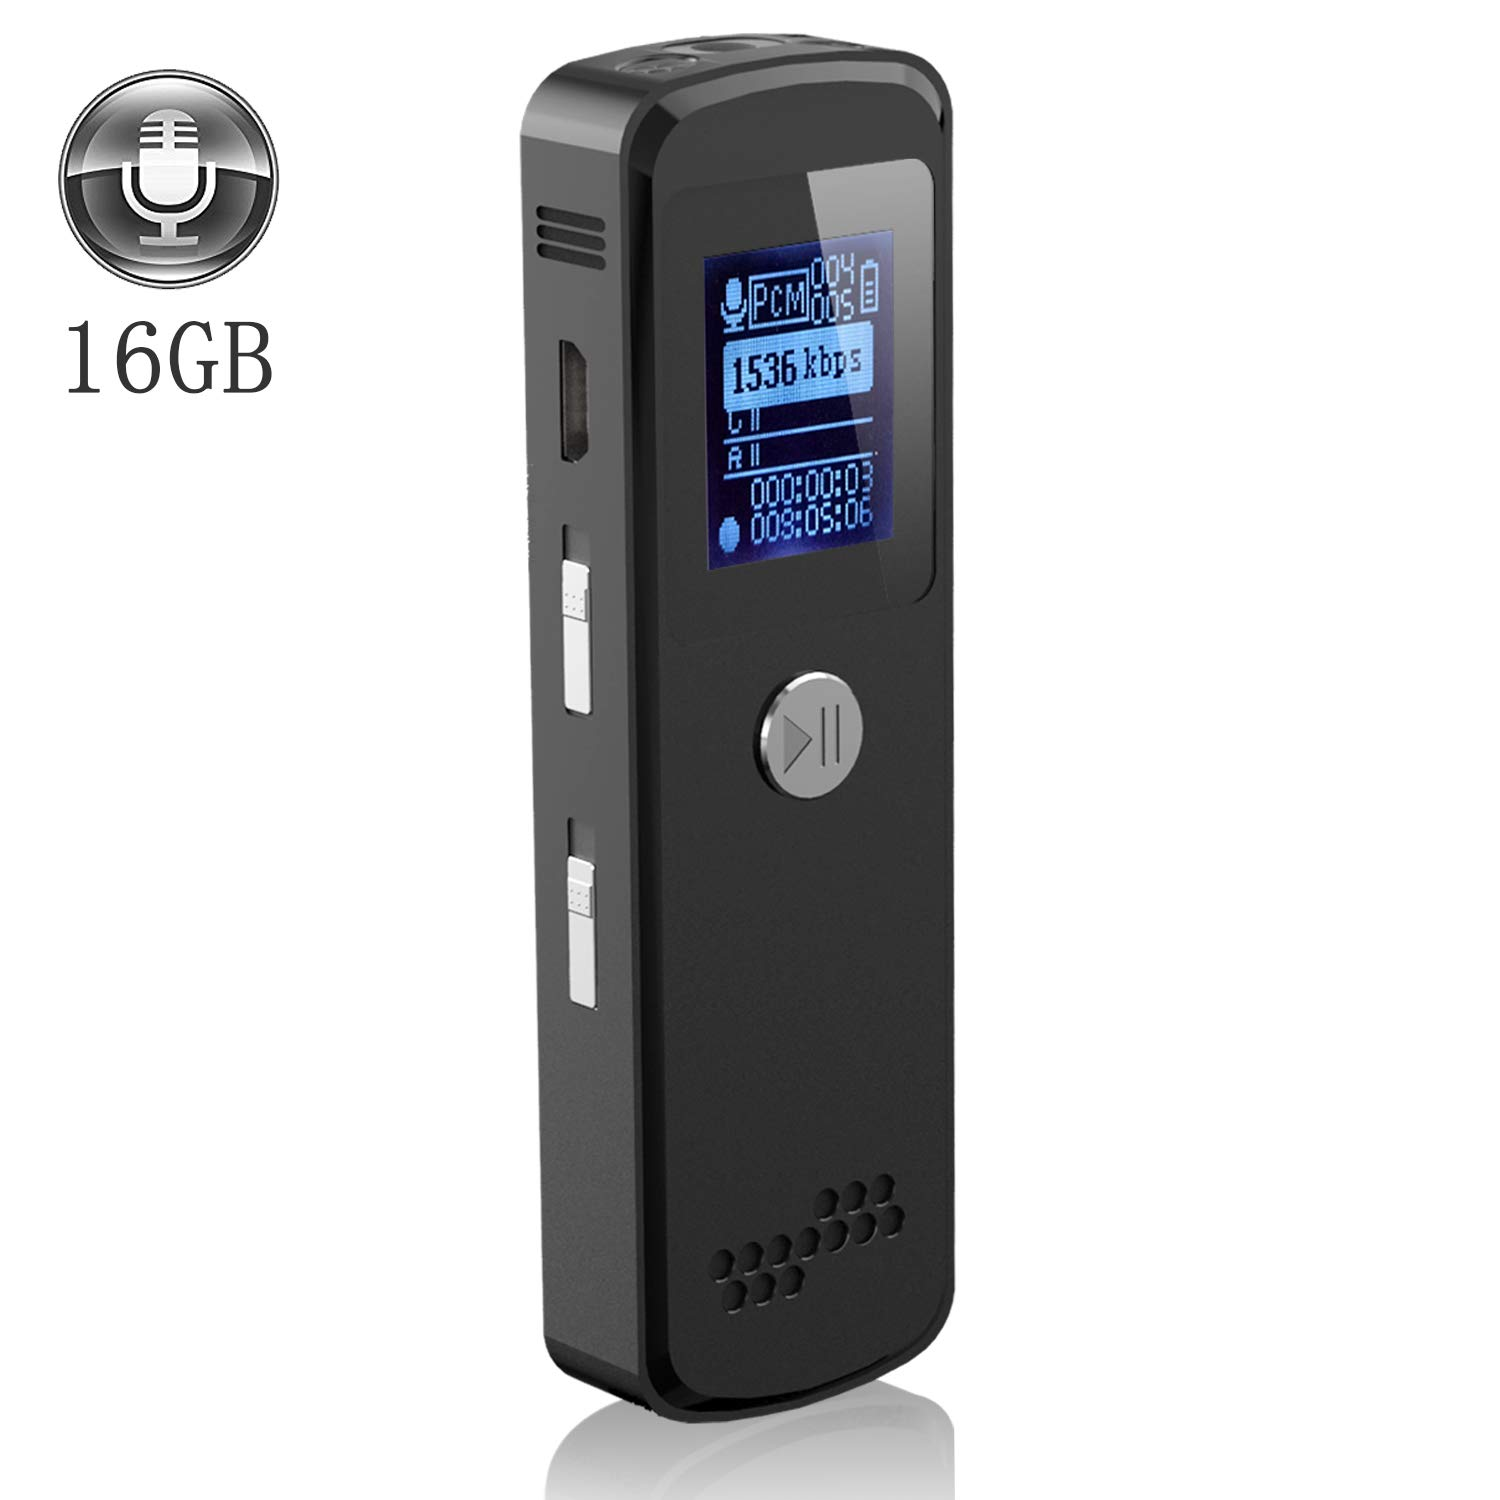 Digital Voice Recorder,16GB Memory Audio Recorder for Lectures Meetings,USB,Rechargeable,MP3 Player,Metal Casing